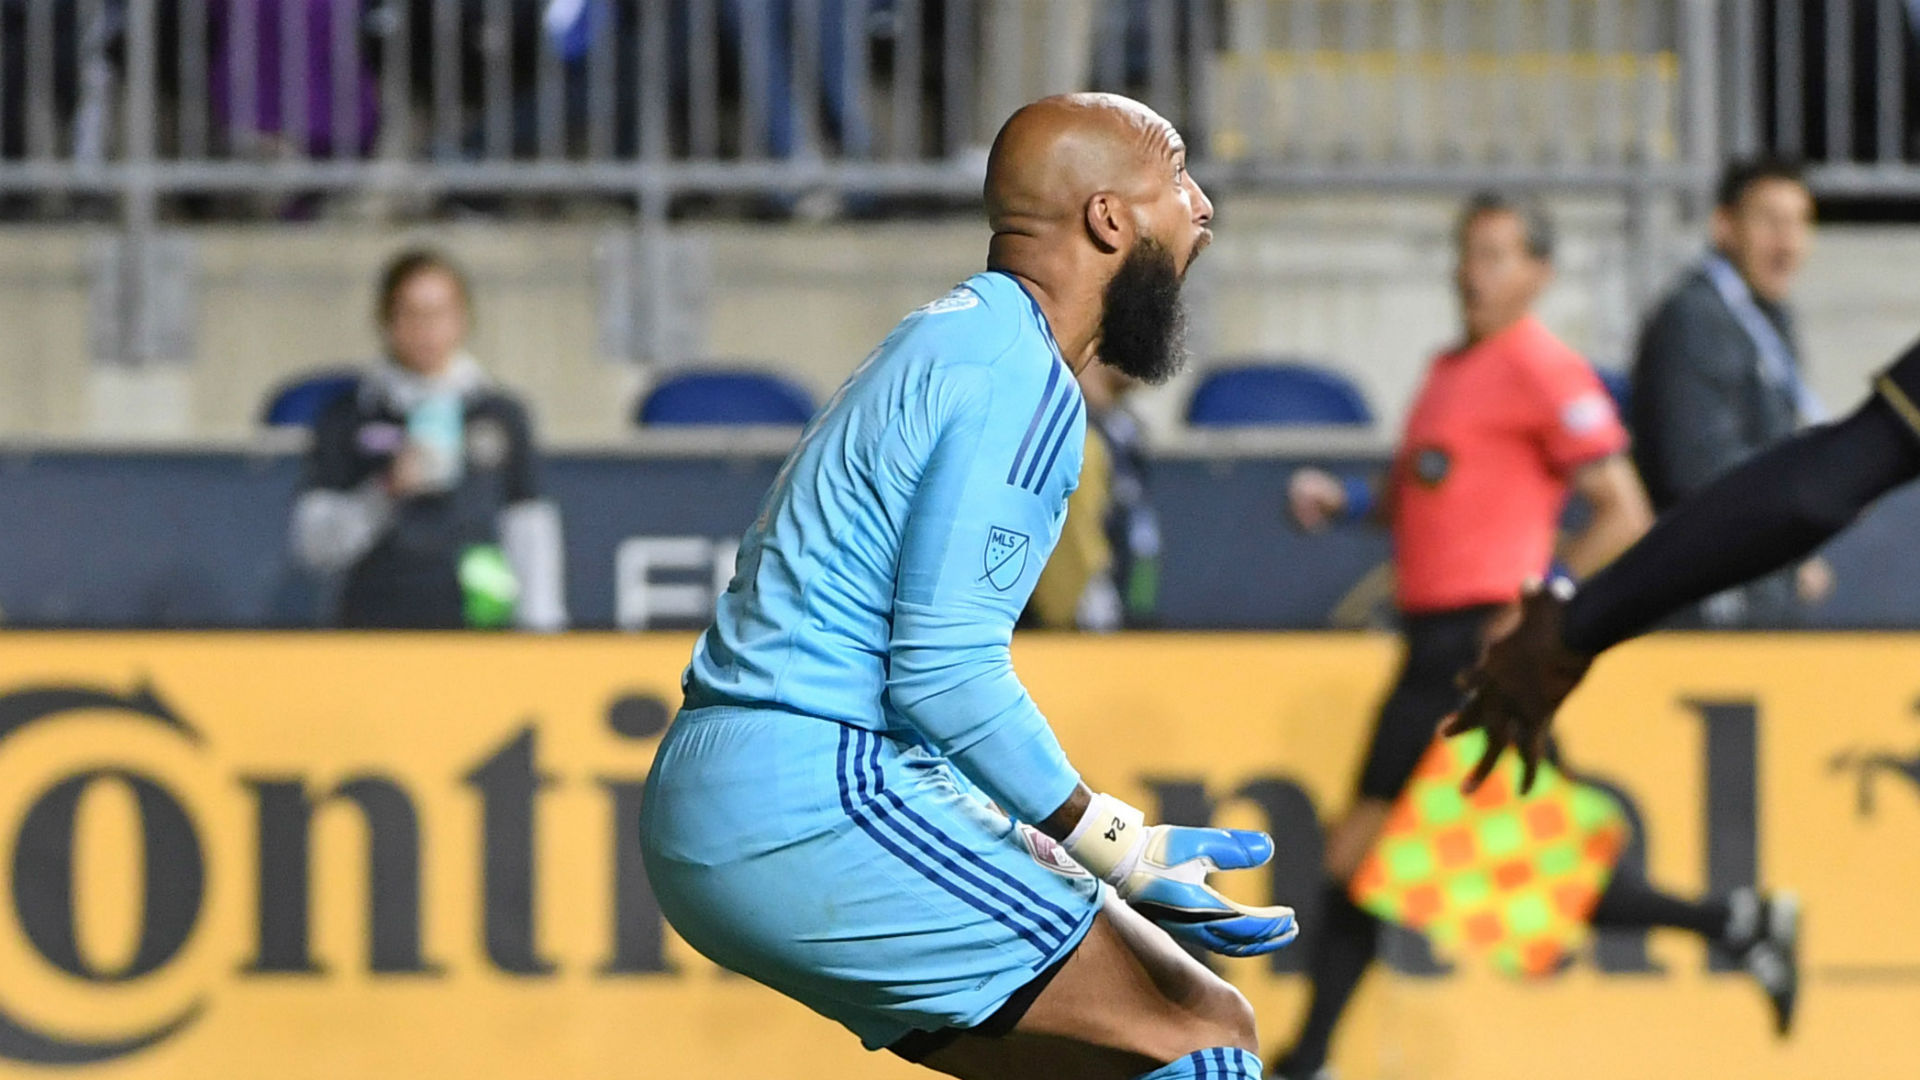 Tim-howard-colorado-rapids-052017_1az5sp6imxav41melw2cmsjoh8